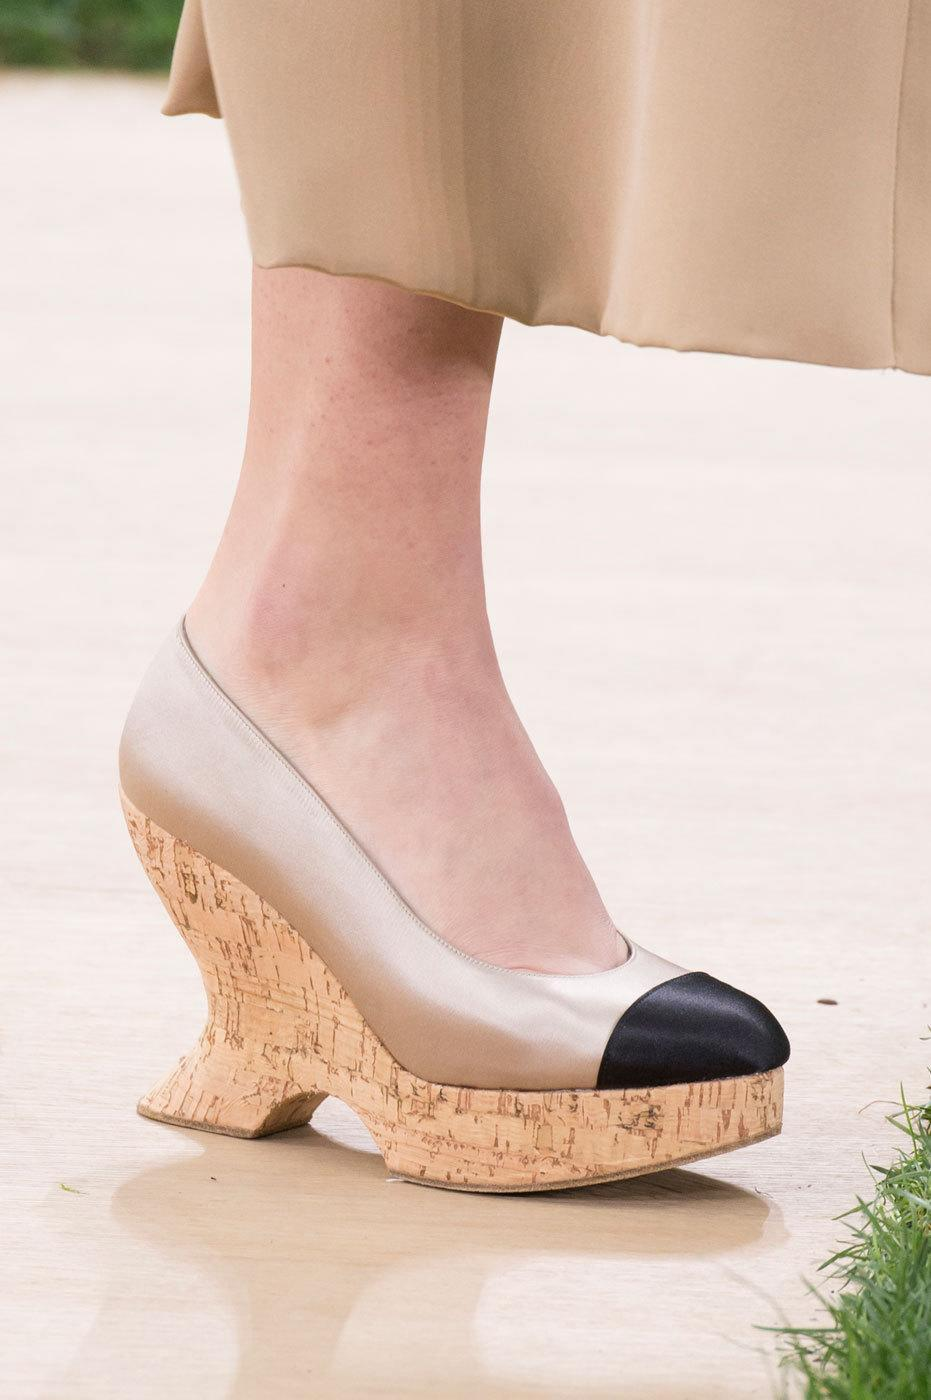 """<p>The flirty wedge just got in bed with a serious spectator pump for the ultimate ladylike look at <a href=""""http://www.chanel.com/en_US/"""" rel=""""nofollow noopener"""" target=""""_blank"""" data-ylk=""""slk:Chanel"""" class=""""link rapid-noclick-resp"""">Chanel</a>. <i>Photos: Imaxtree</i> </p>"""